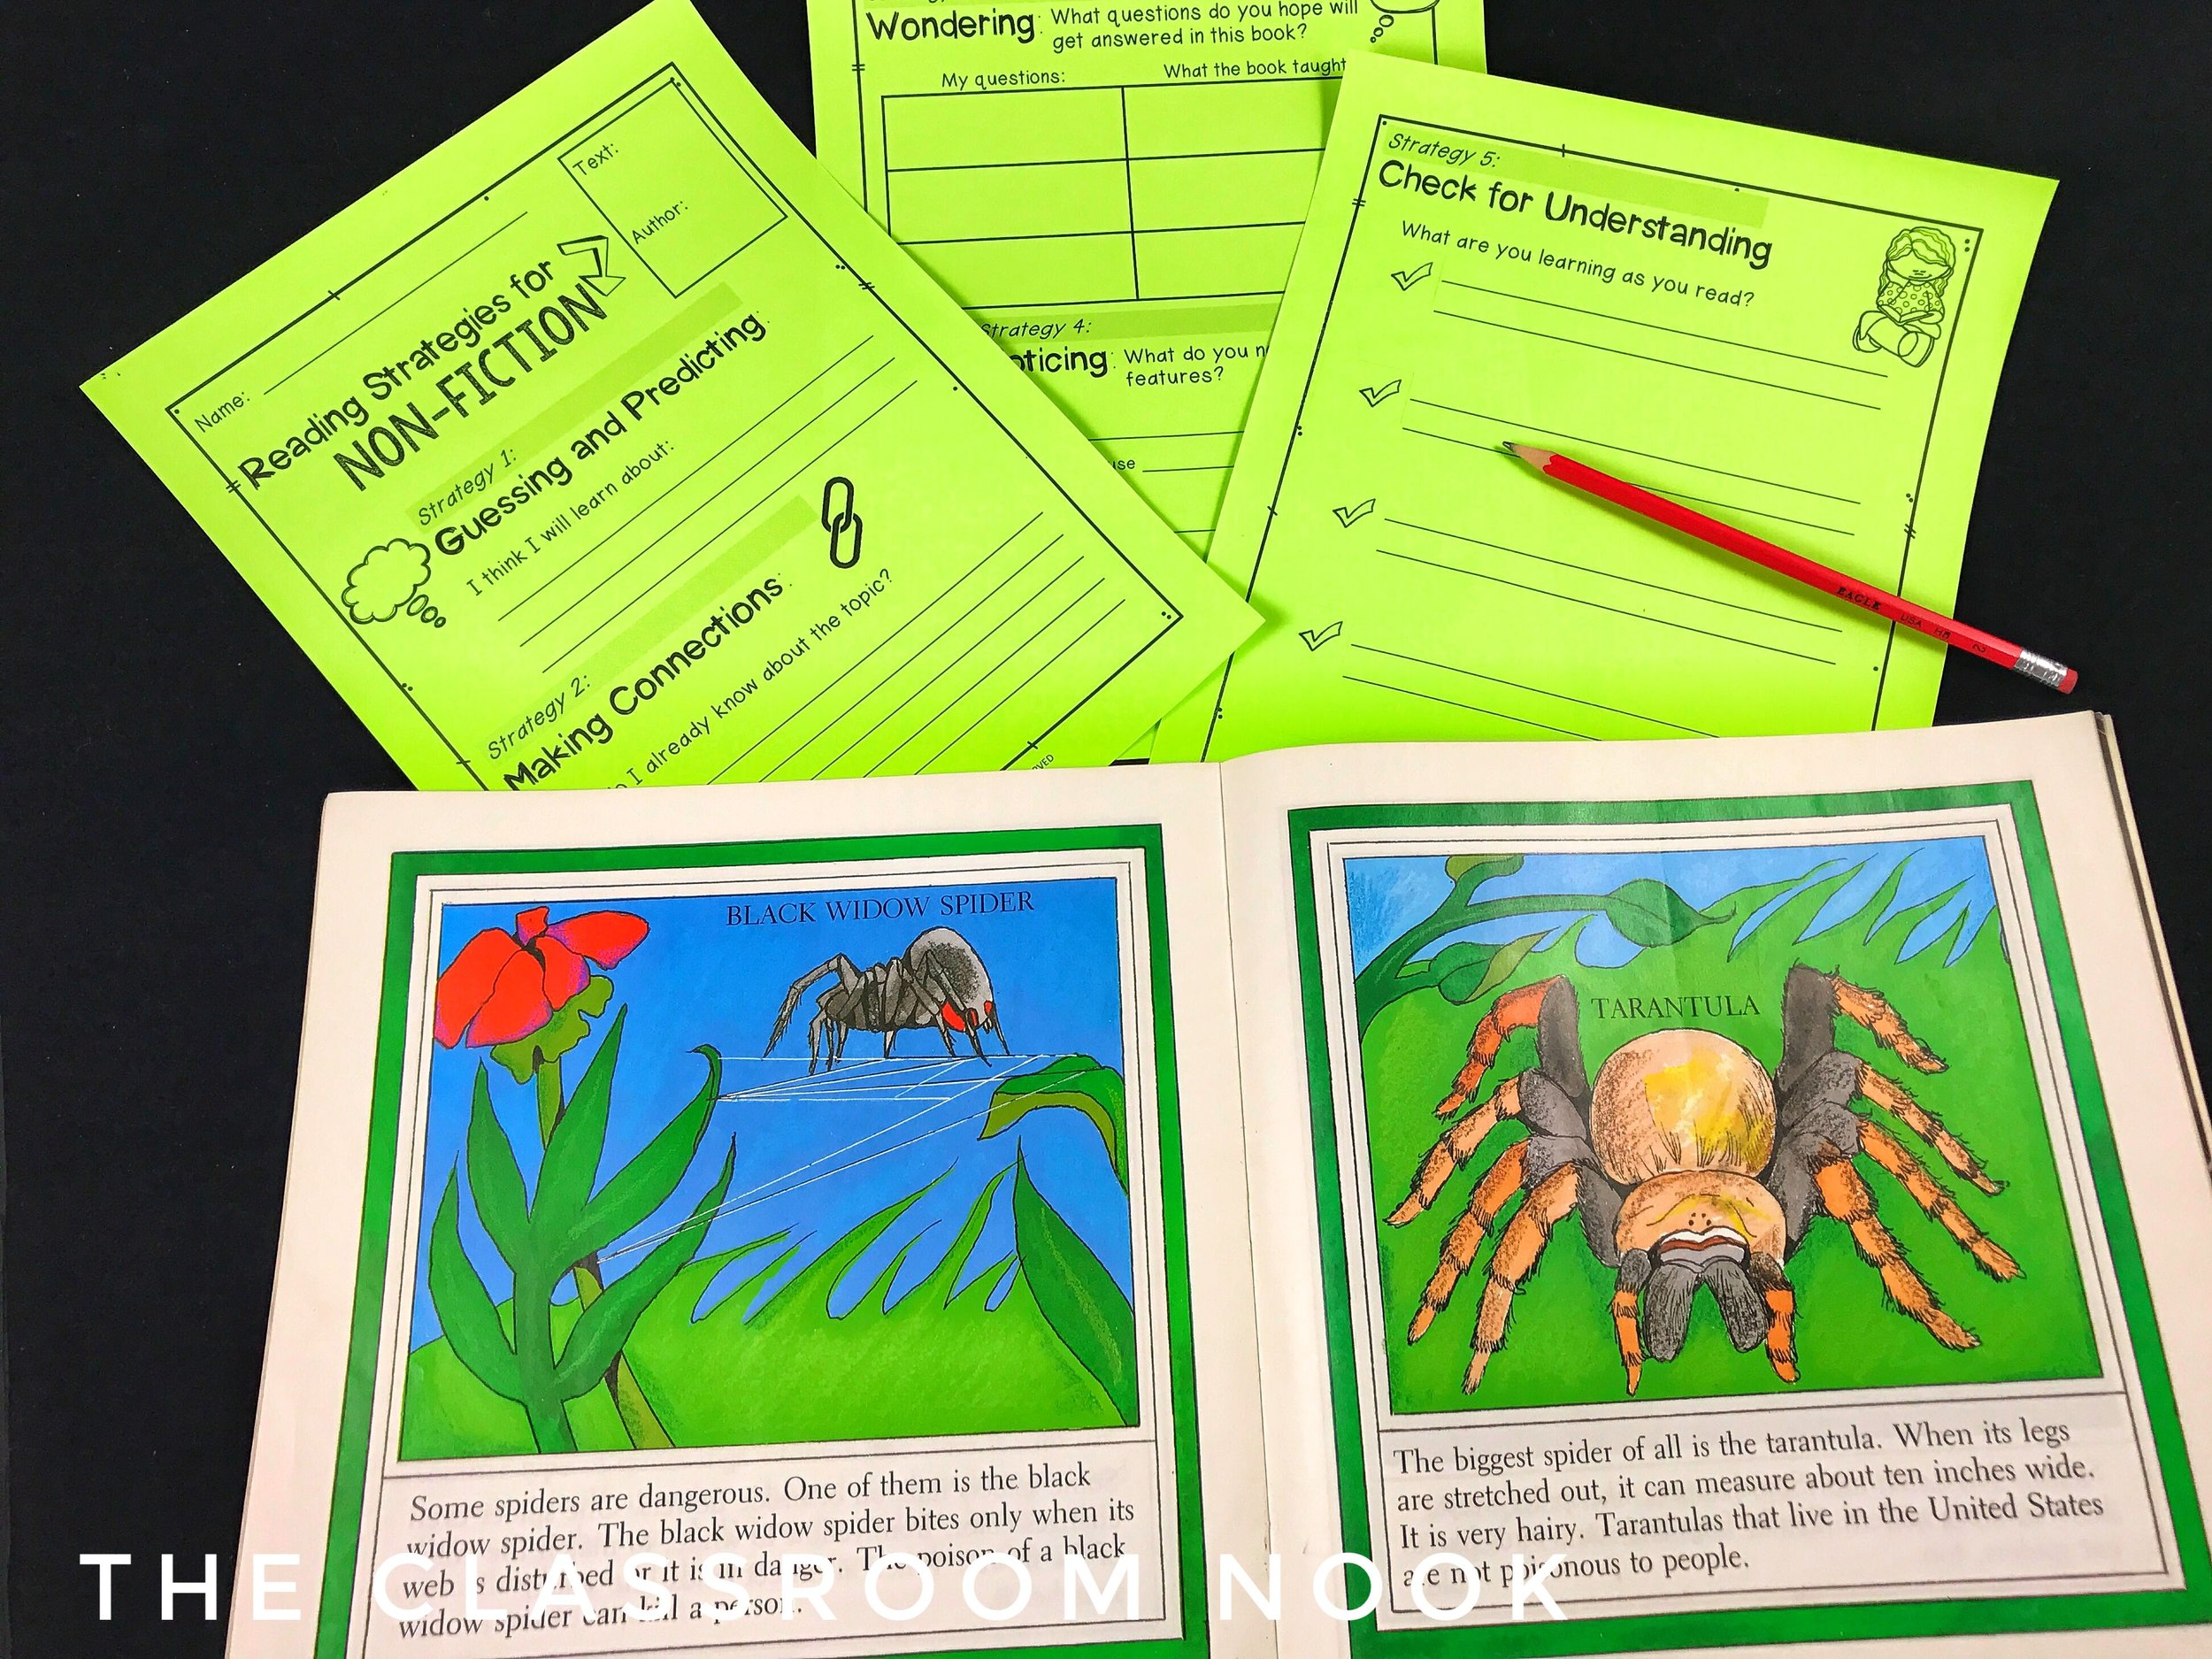 Teaching students how to use reading strategies for nonfiction texts including making connections, questioning, inferring, and others